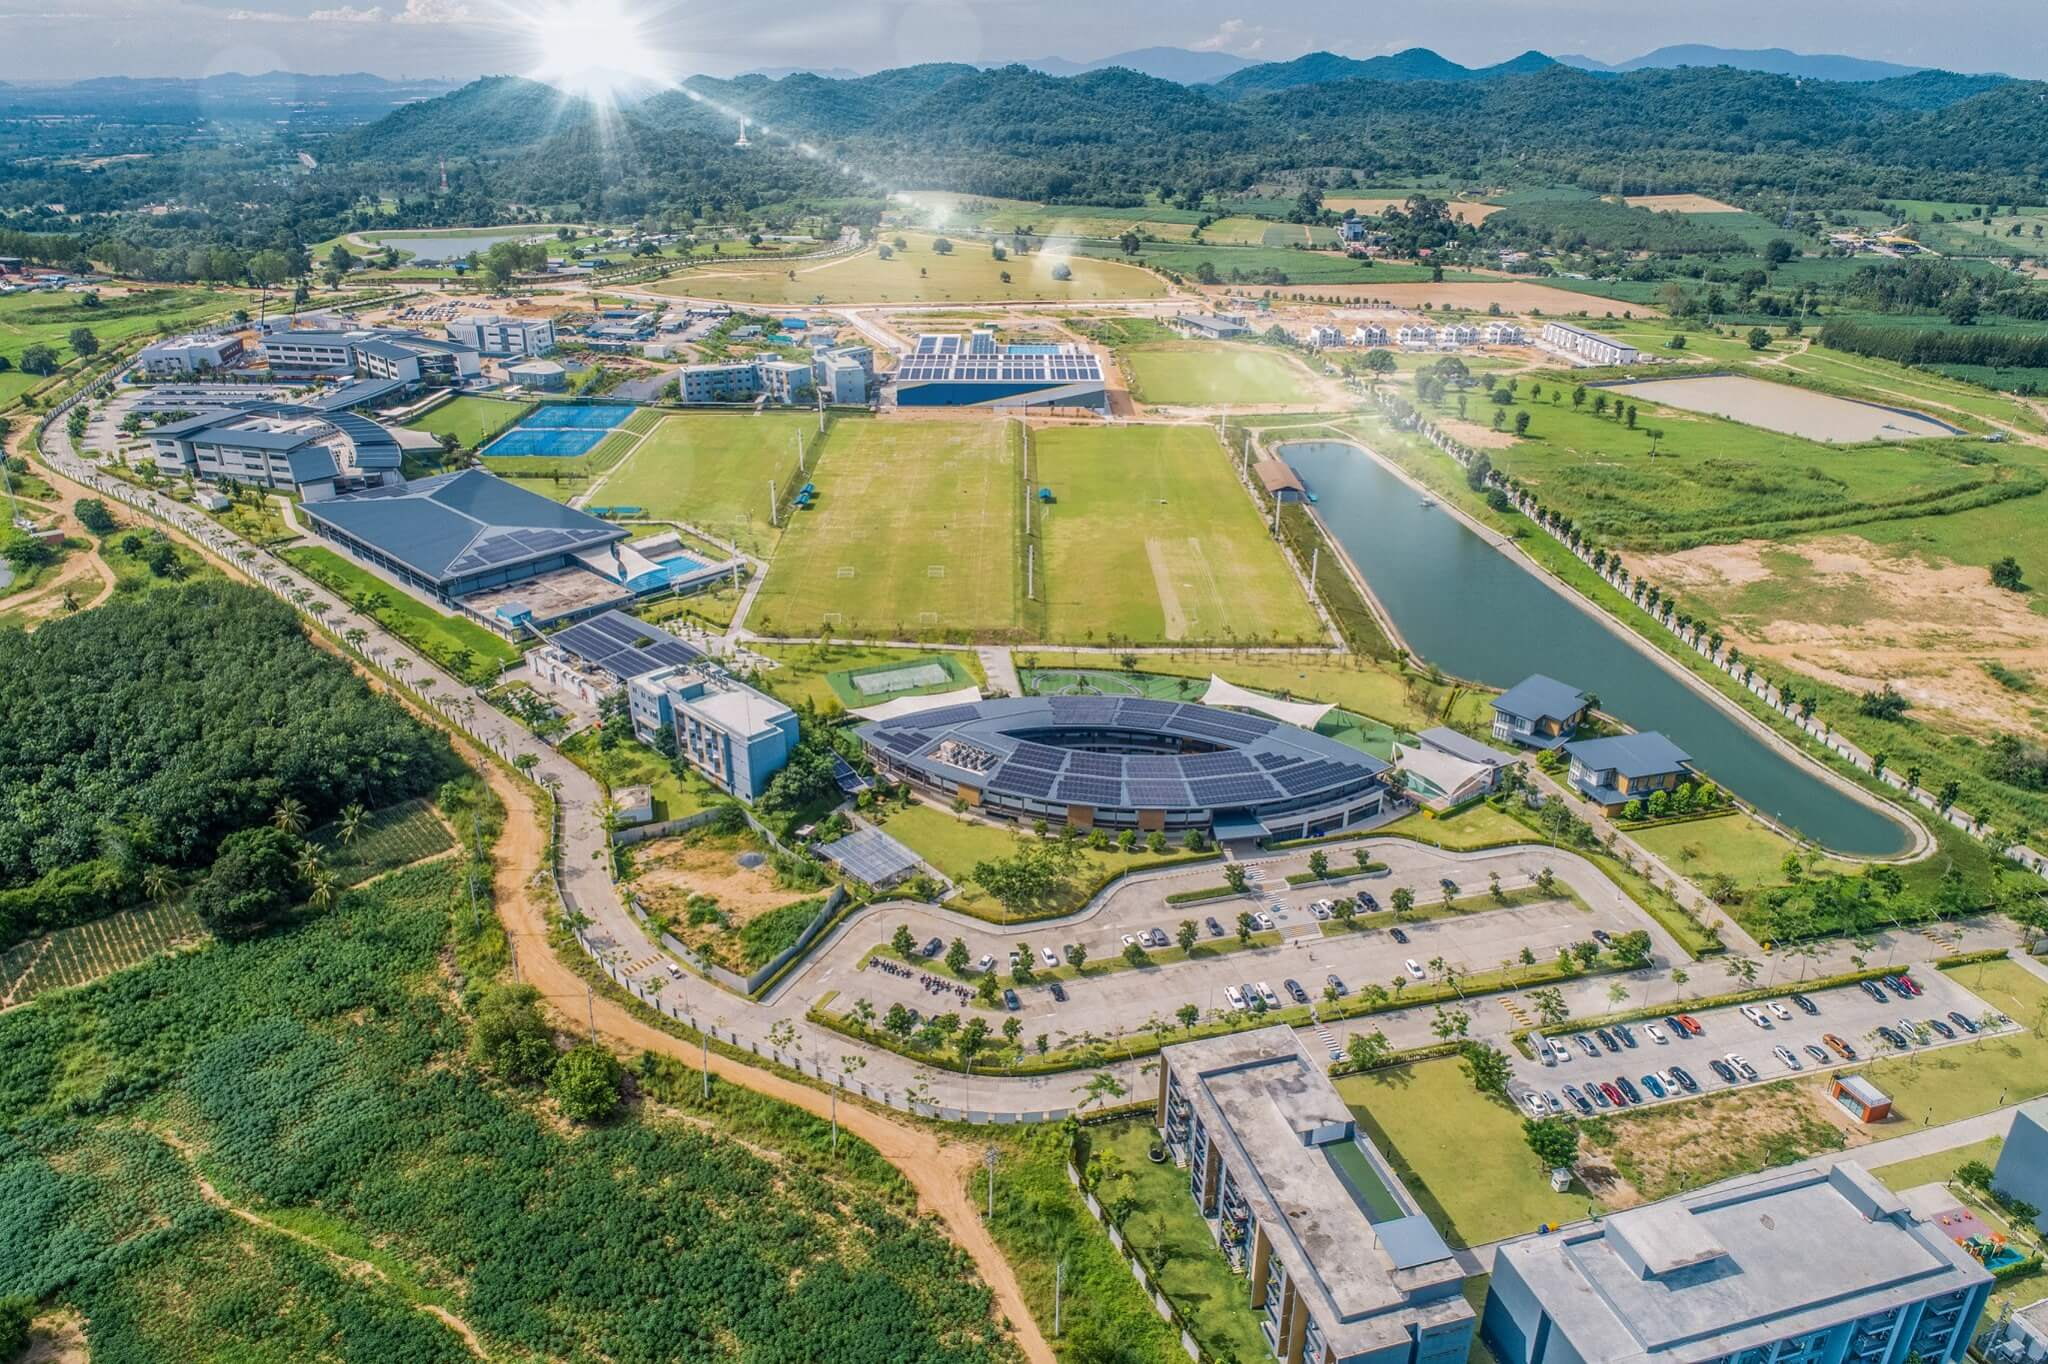 Rugby School Thailand: The best of British education in Asia